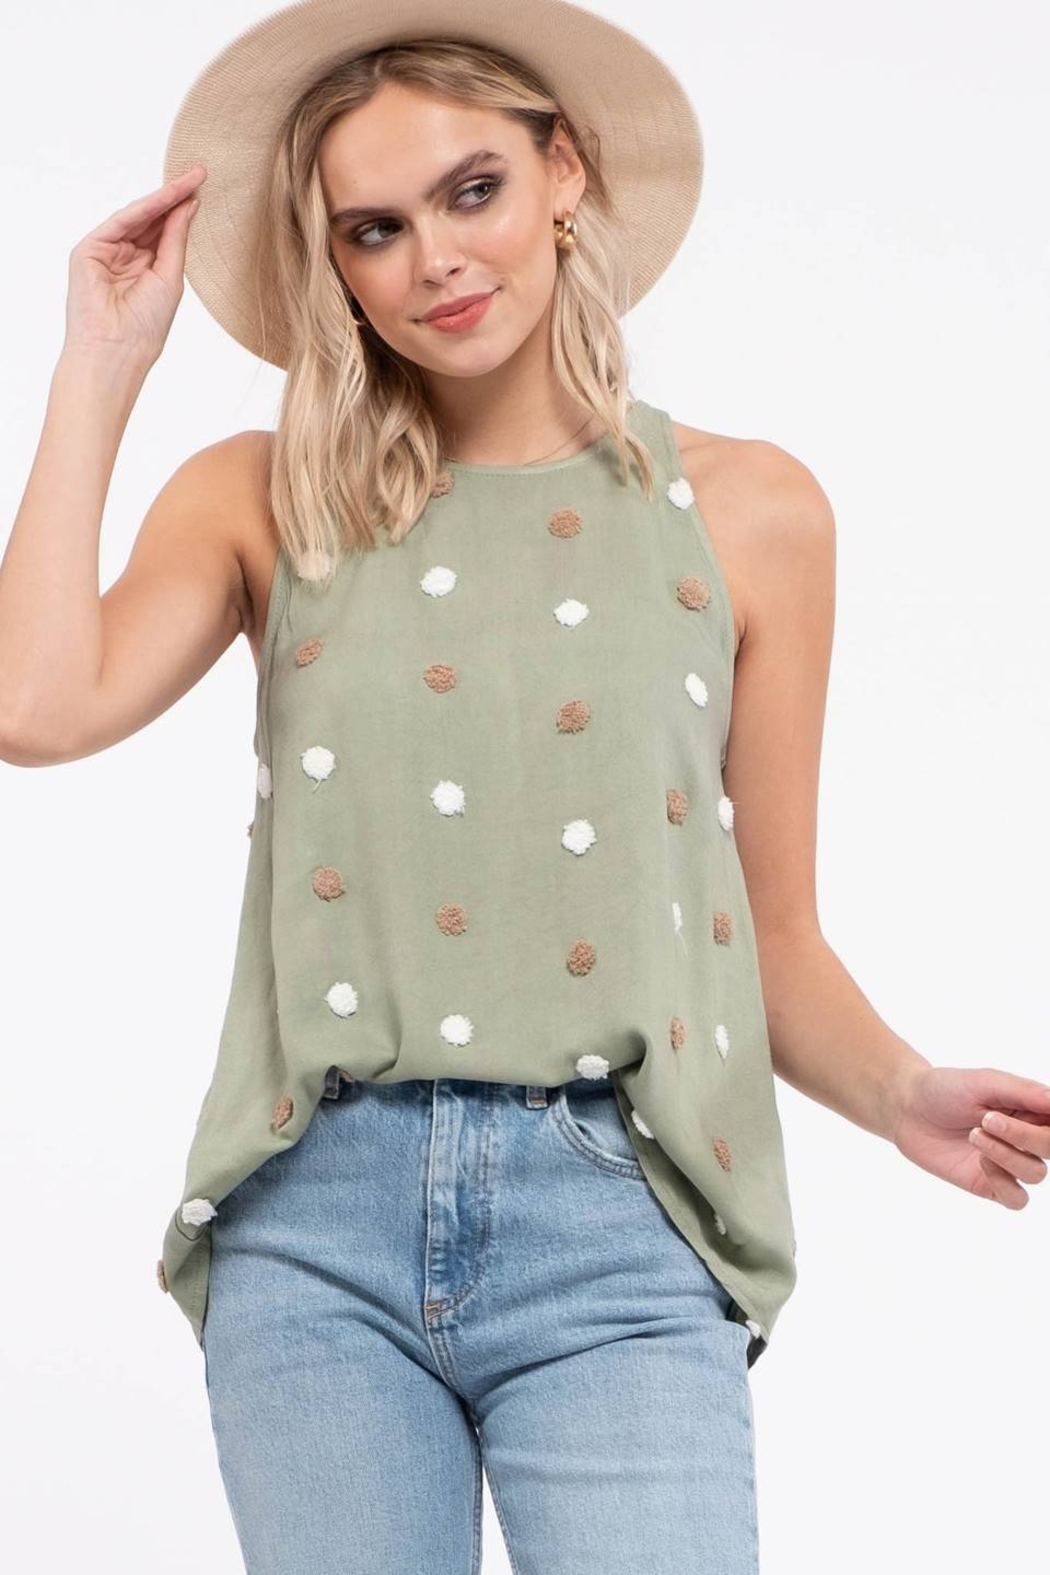 blu pepper  TWO TONE SWISS DOT TOP - Front Cropped Image